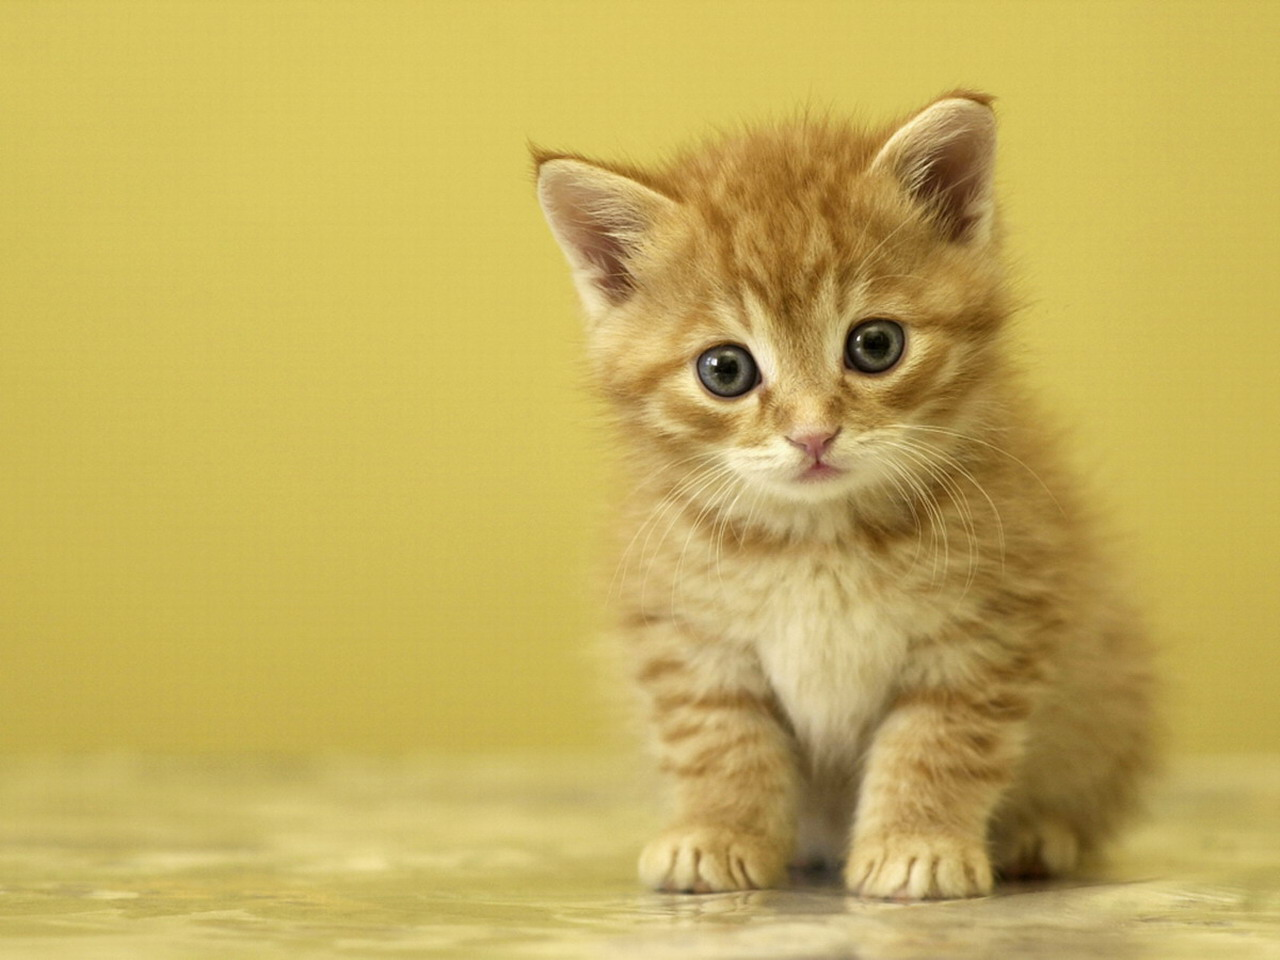 Free Download Cute Baby Kittens 9571 Hd Wallpapers In Animals Imagescicom 1280x960 For Your Desktop Mobile Tablet Explore 48 Baby Cats Wallpaper Cats Wallpaper Cute Kitten Wallpapers For Desktop